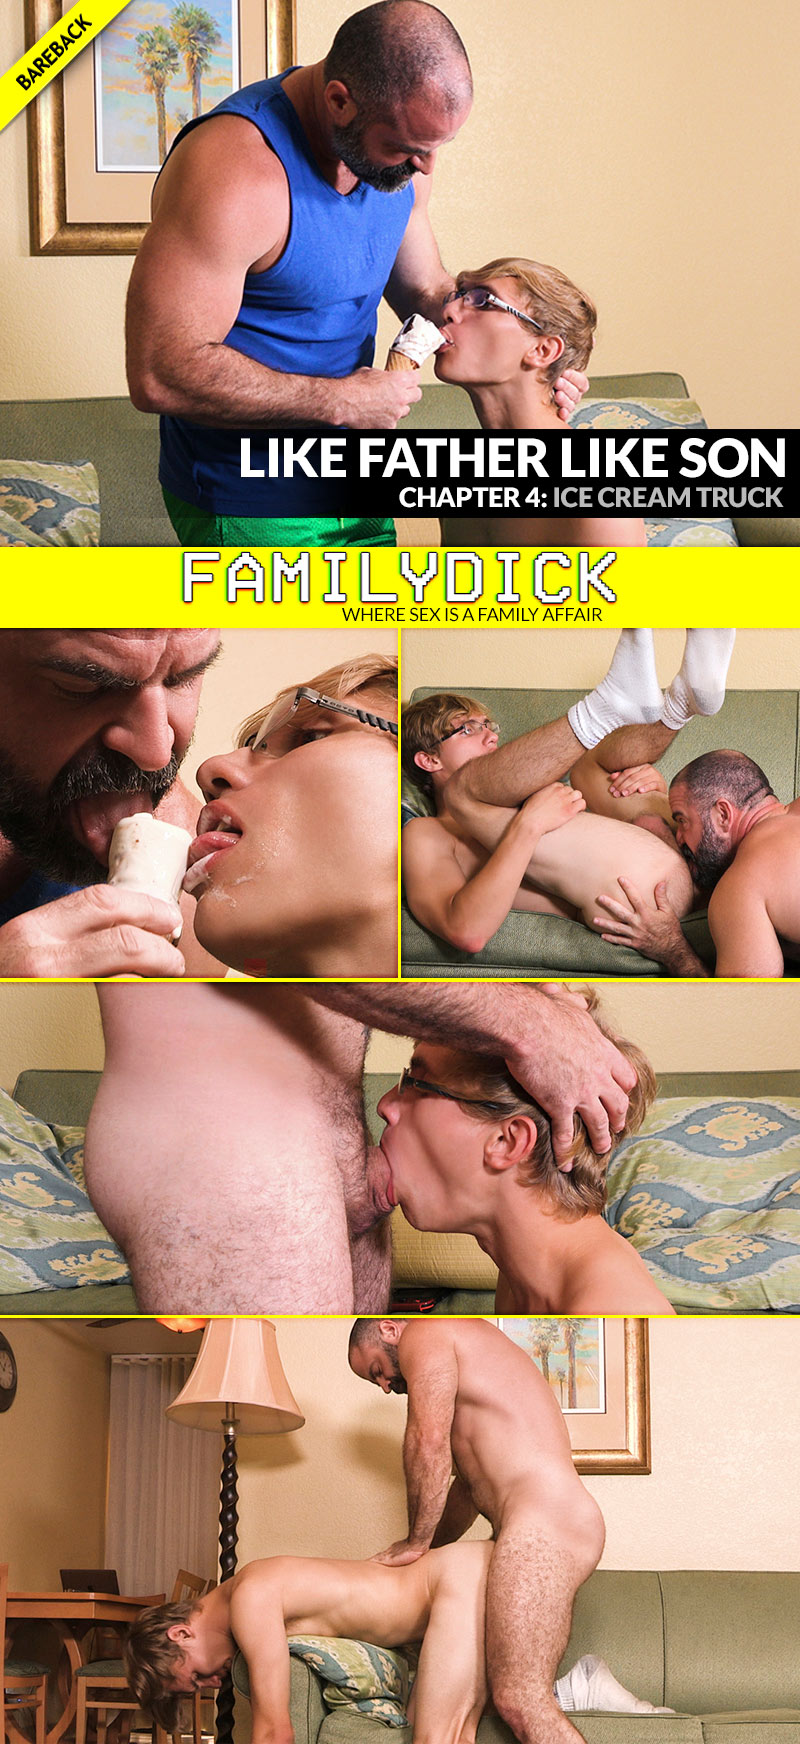 Like Father Like Son, Chapter 4: ICE CREAM TRUCK (with Bishop Angus and Barron Angus) at FamilyDick